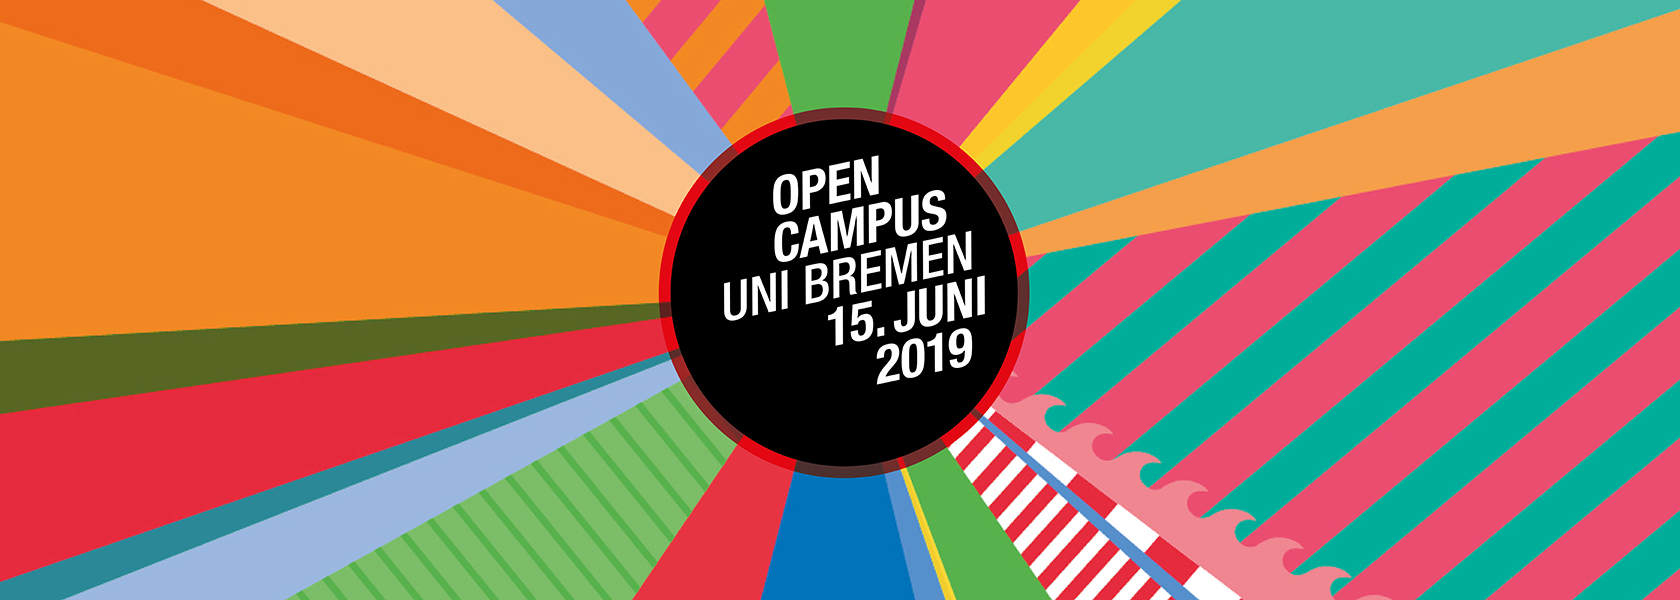 OPEN CAMPUS is on 15 June 2019.